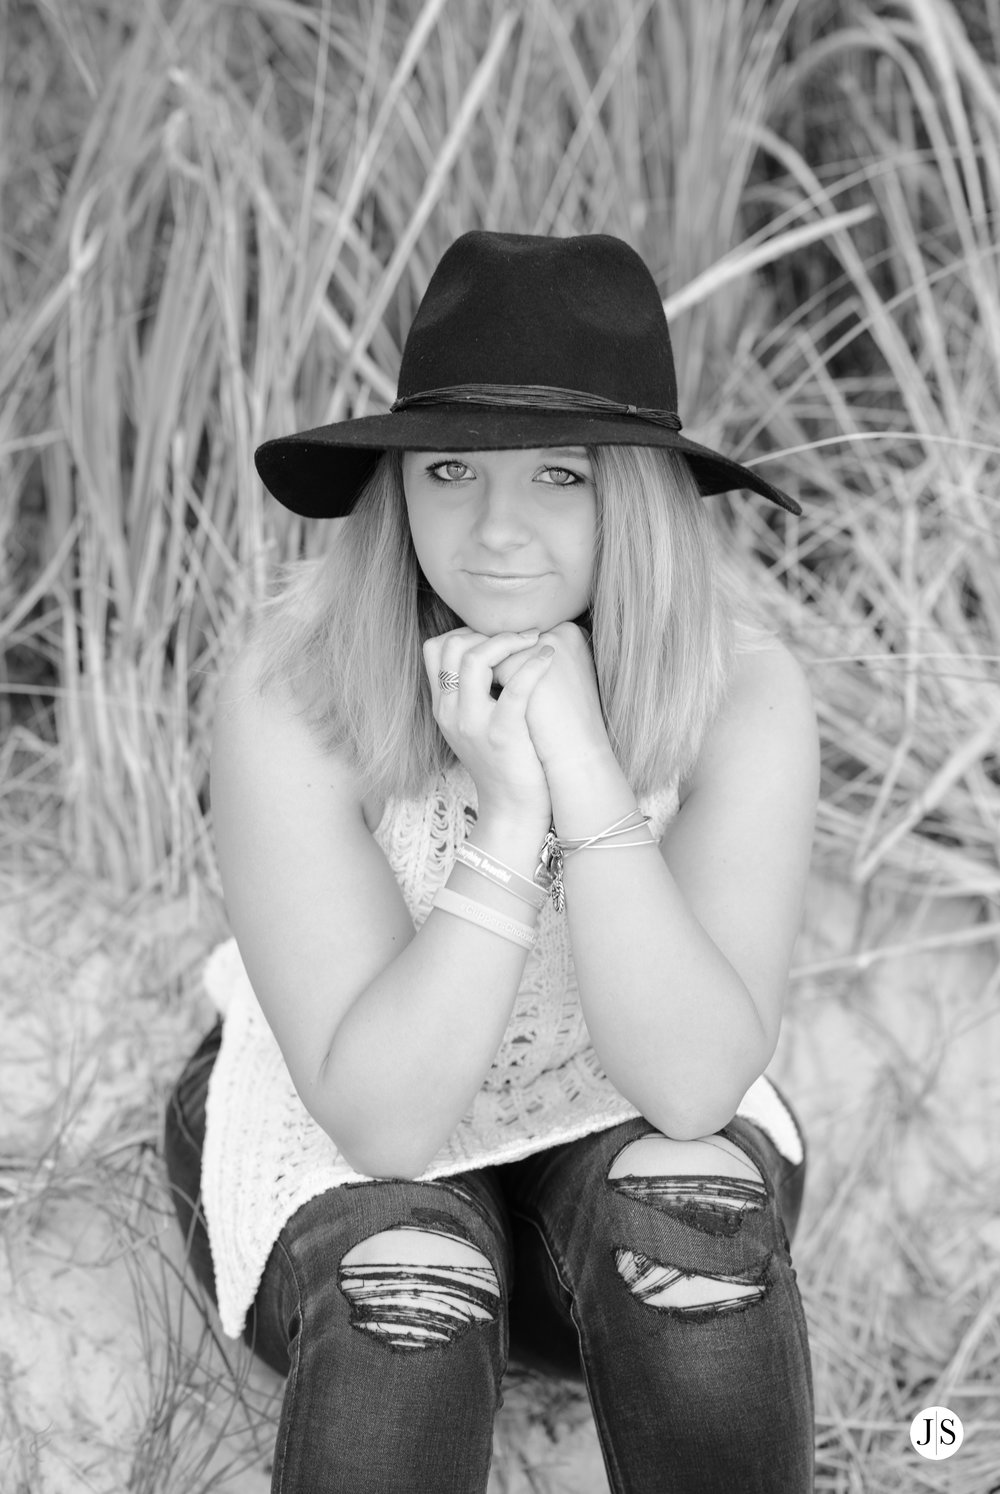 senior-portraits-beach-sunset-salisbury-music-singer-guitar-hat-maryland-photo 8.jpg